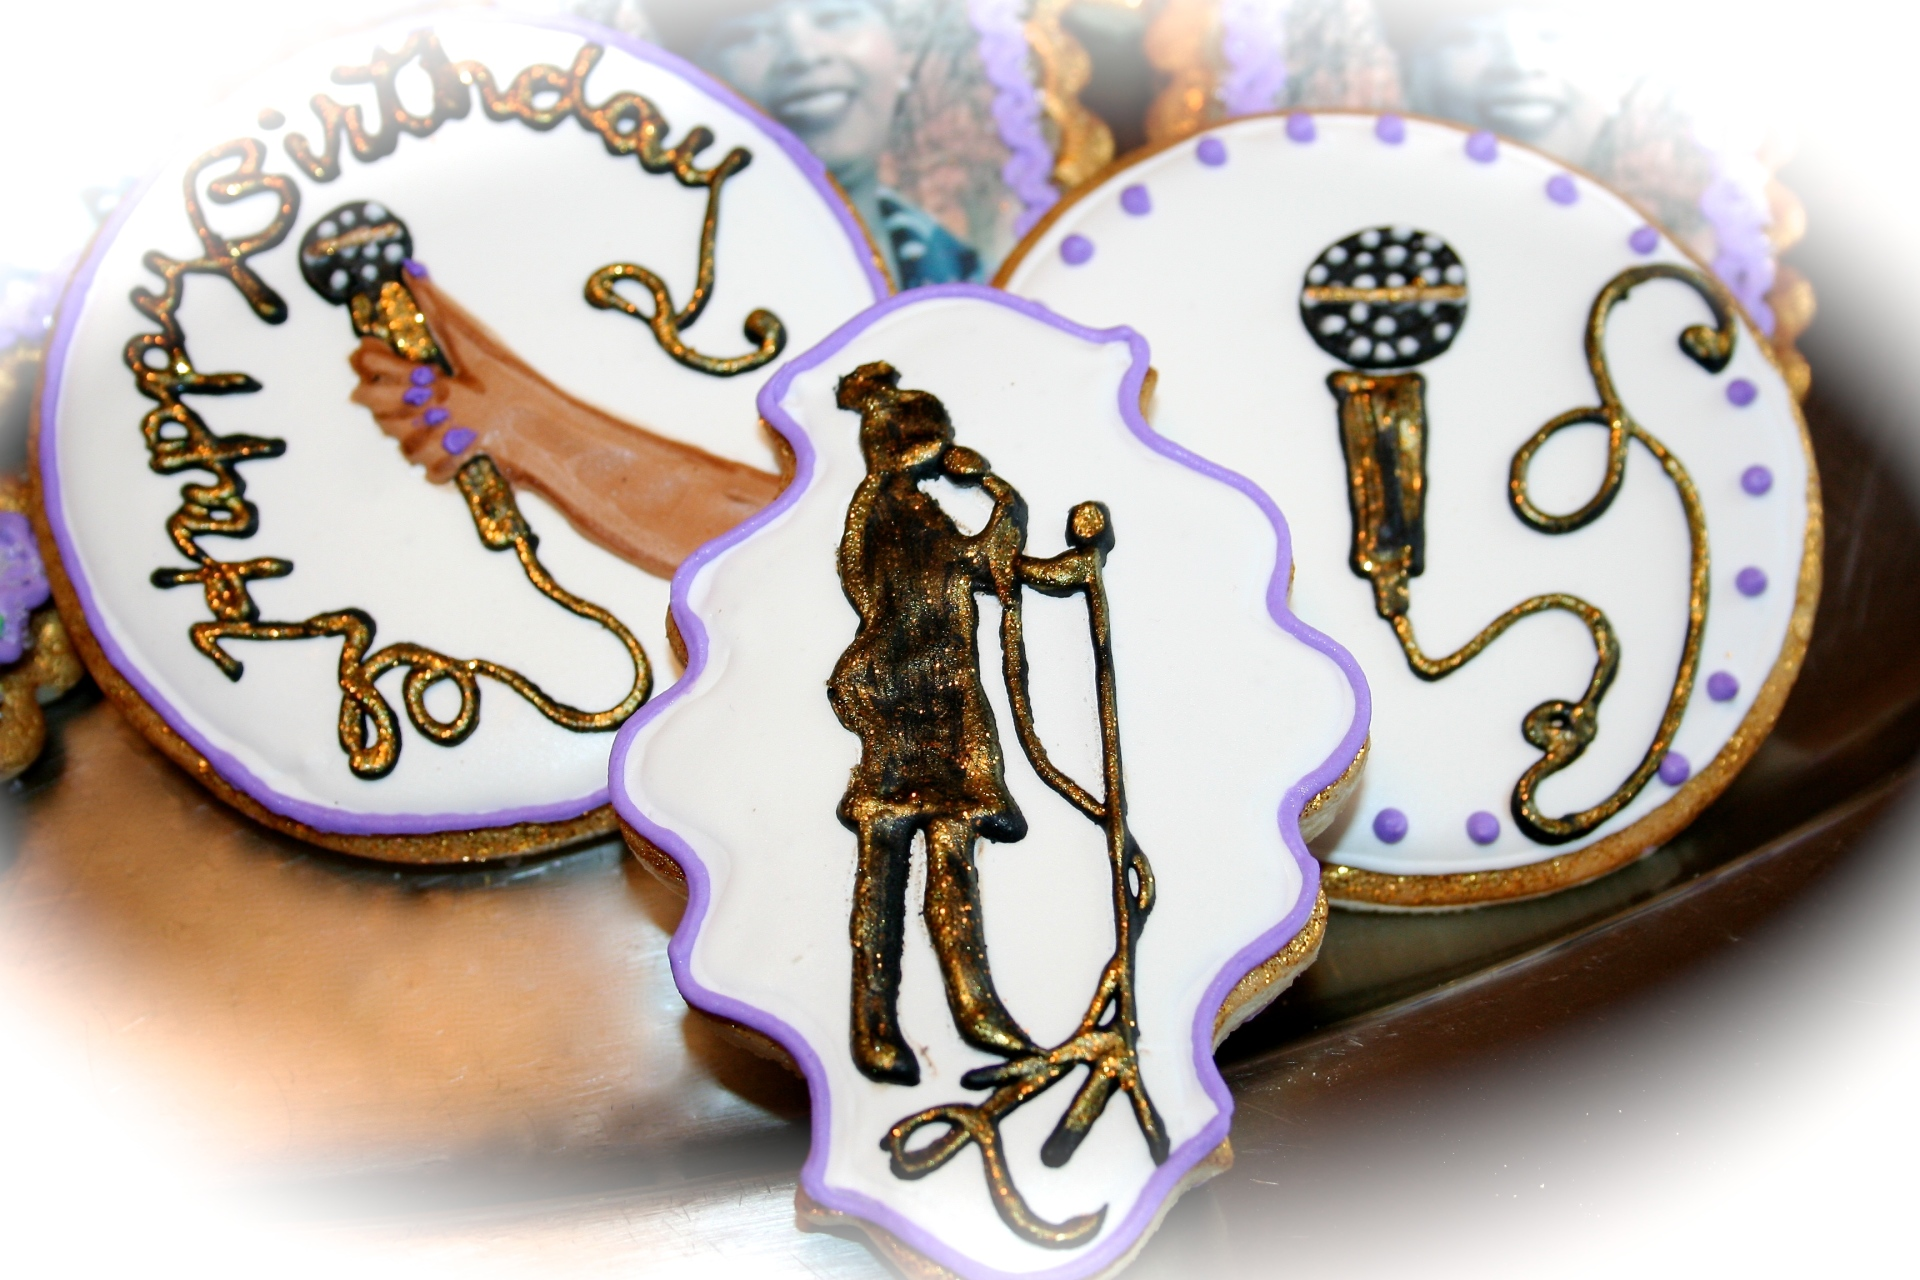 Original Custom Design Sugar Cookies